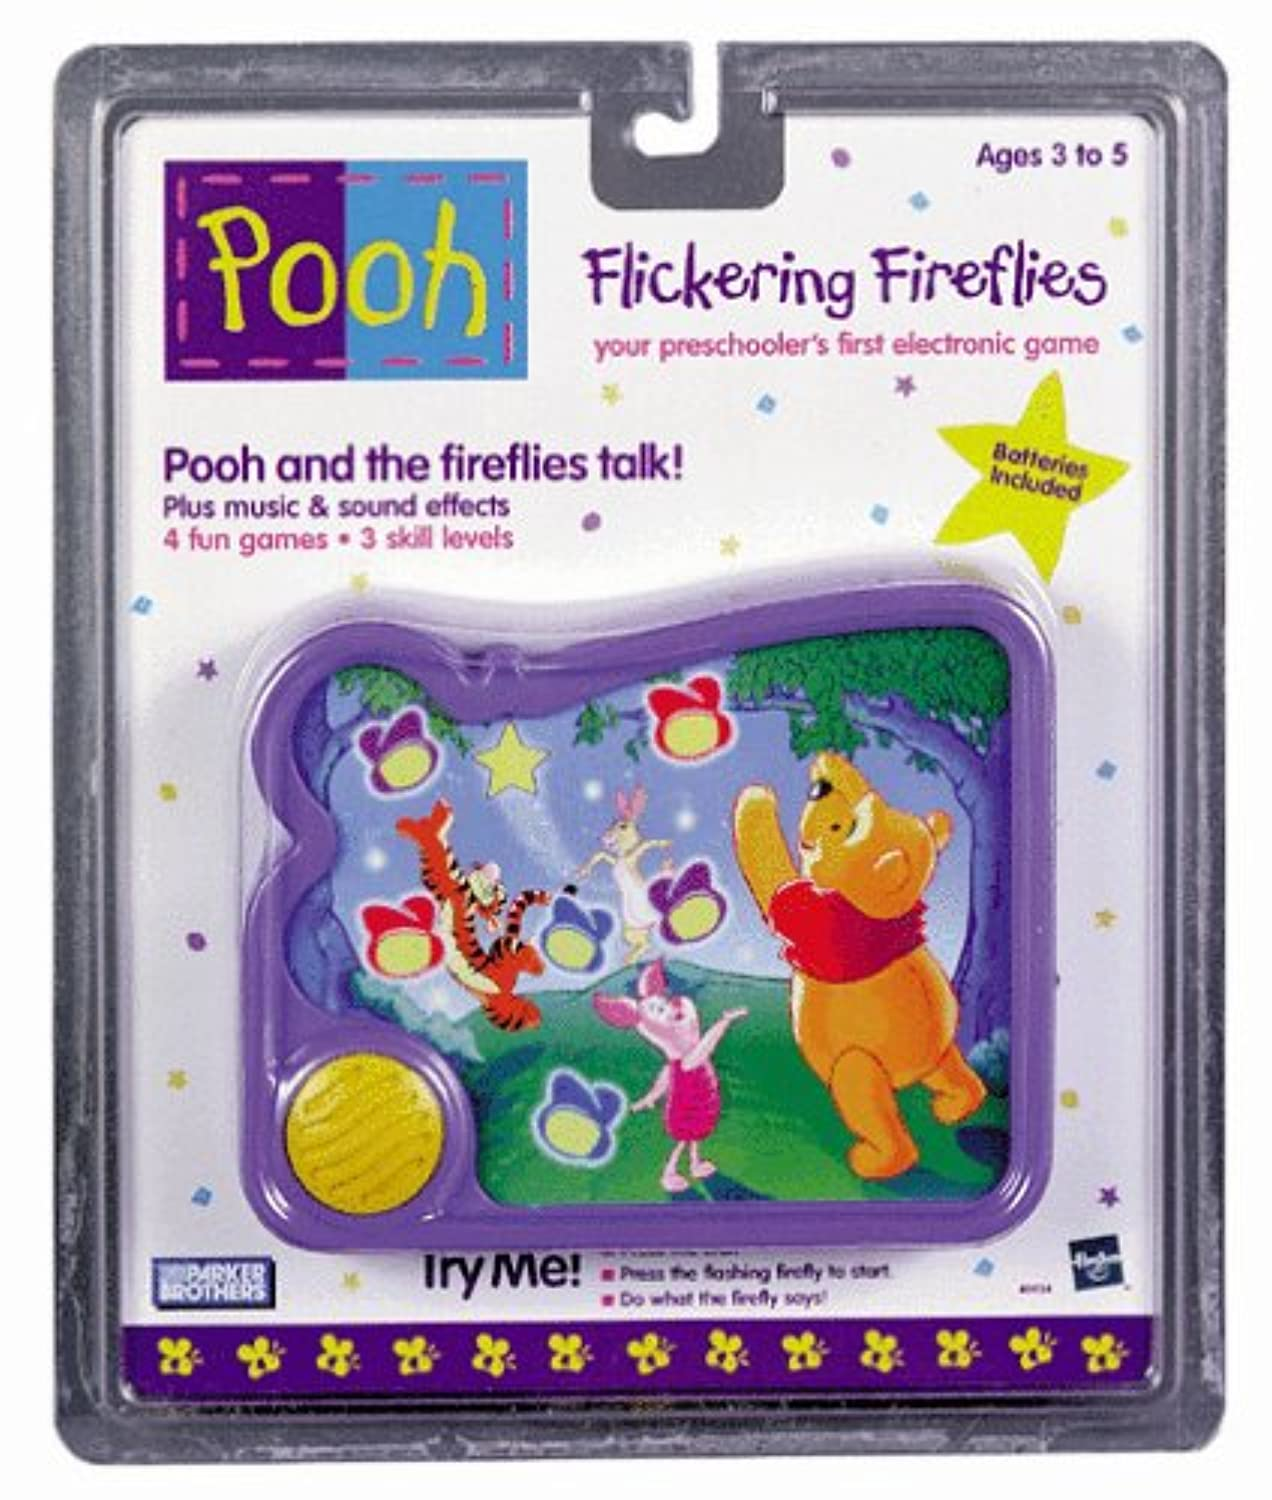 [ミルトンブラッドリー]Milton Bradley Winnie The Pooh Flickering Fireflies Handheld Electronic Game for Preschoolers, 4 Games in One C-015D [並行輸入品]